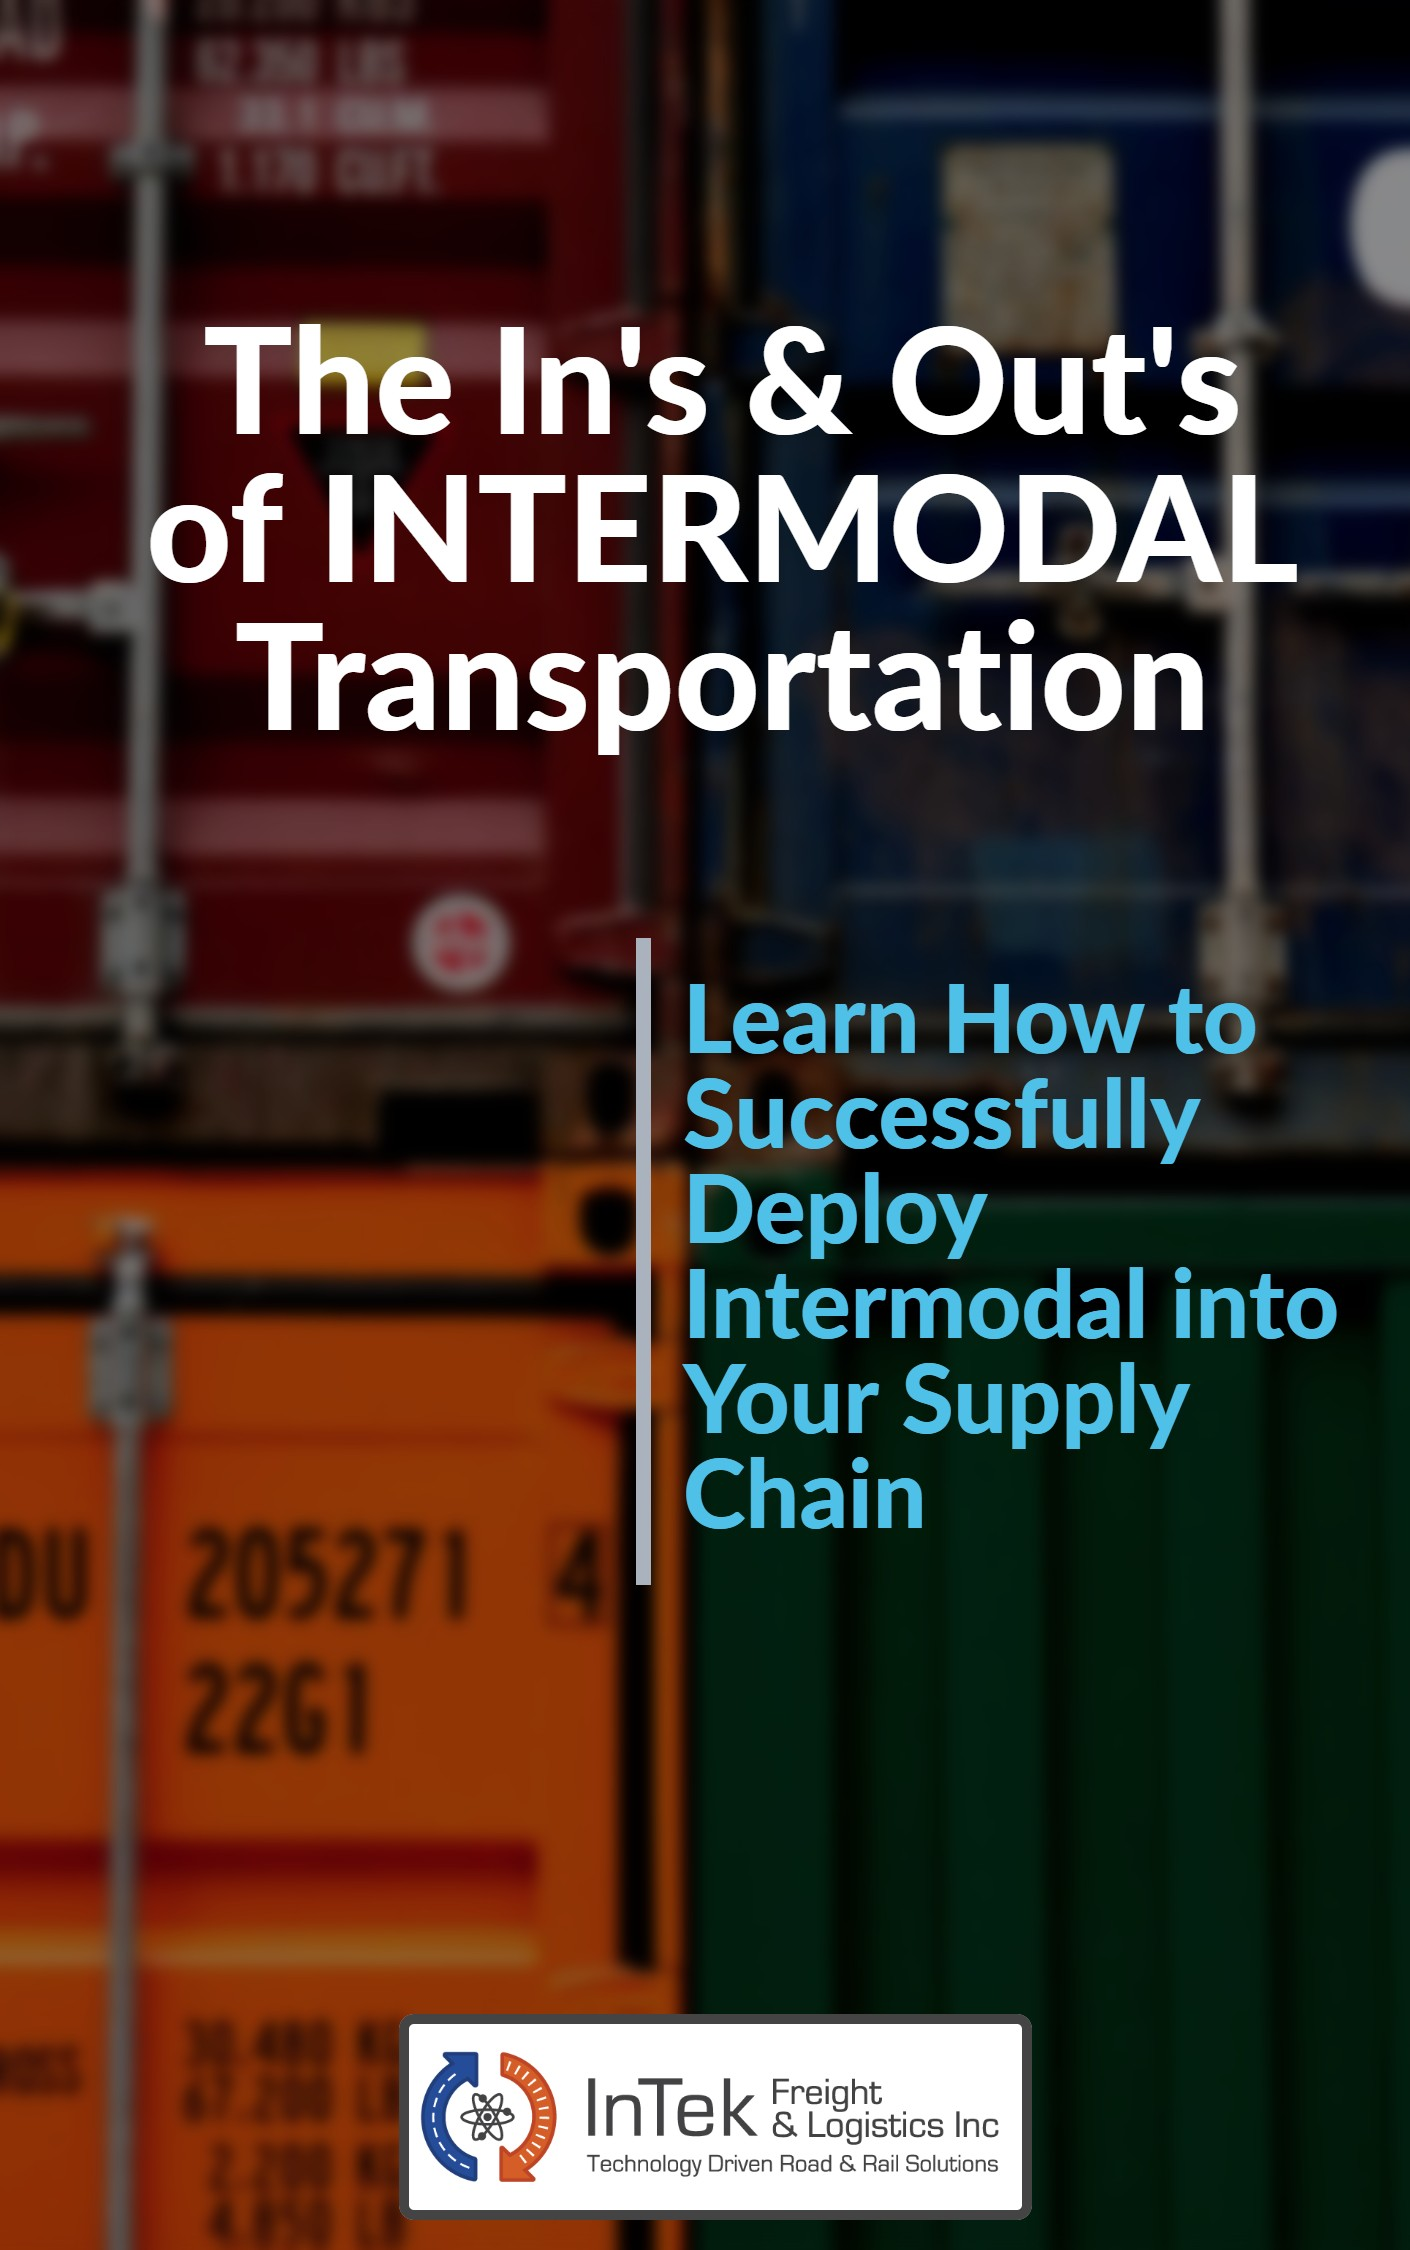 The Ins & Outs of Intermodal Transportation